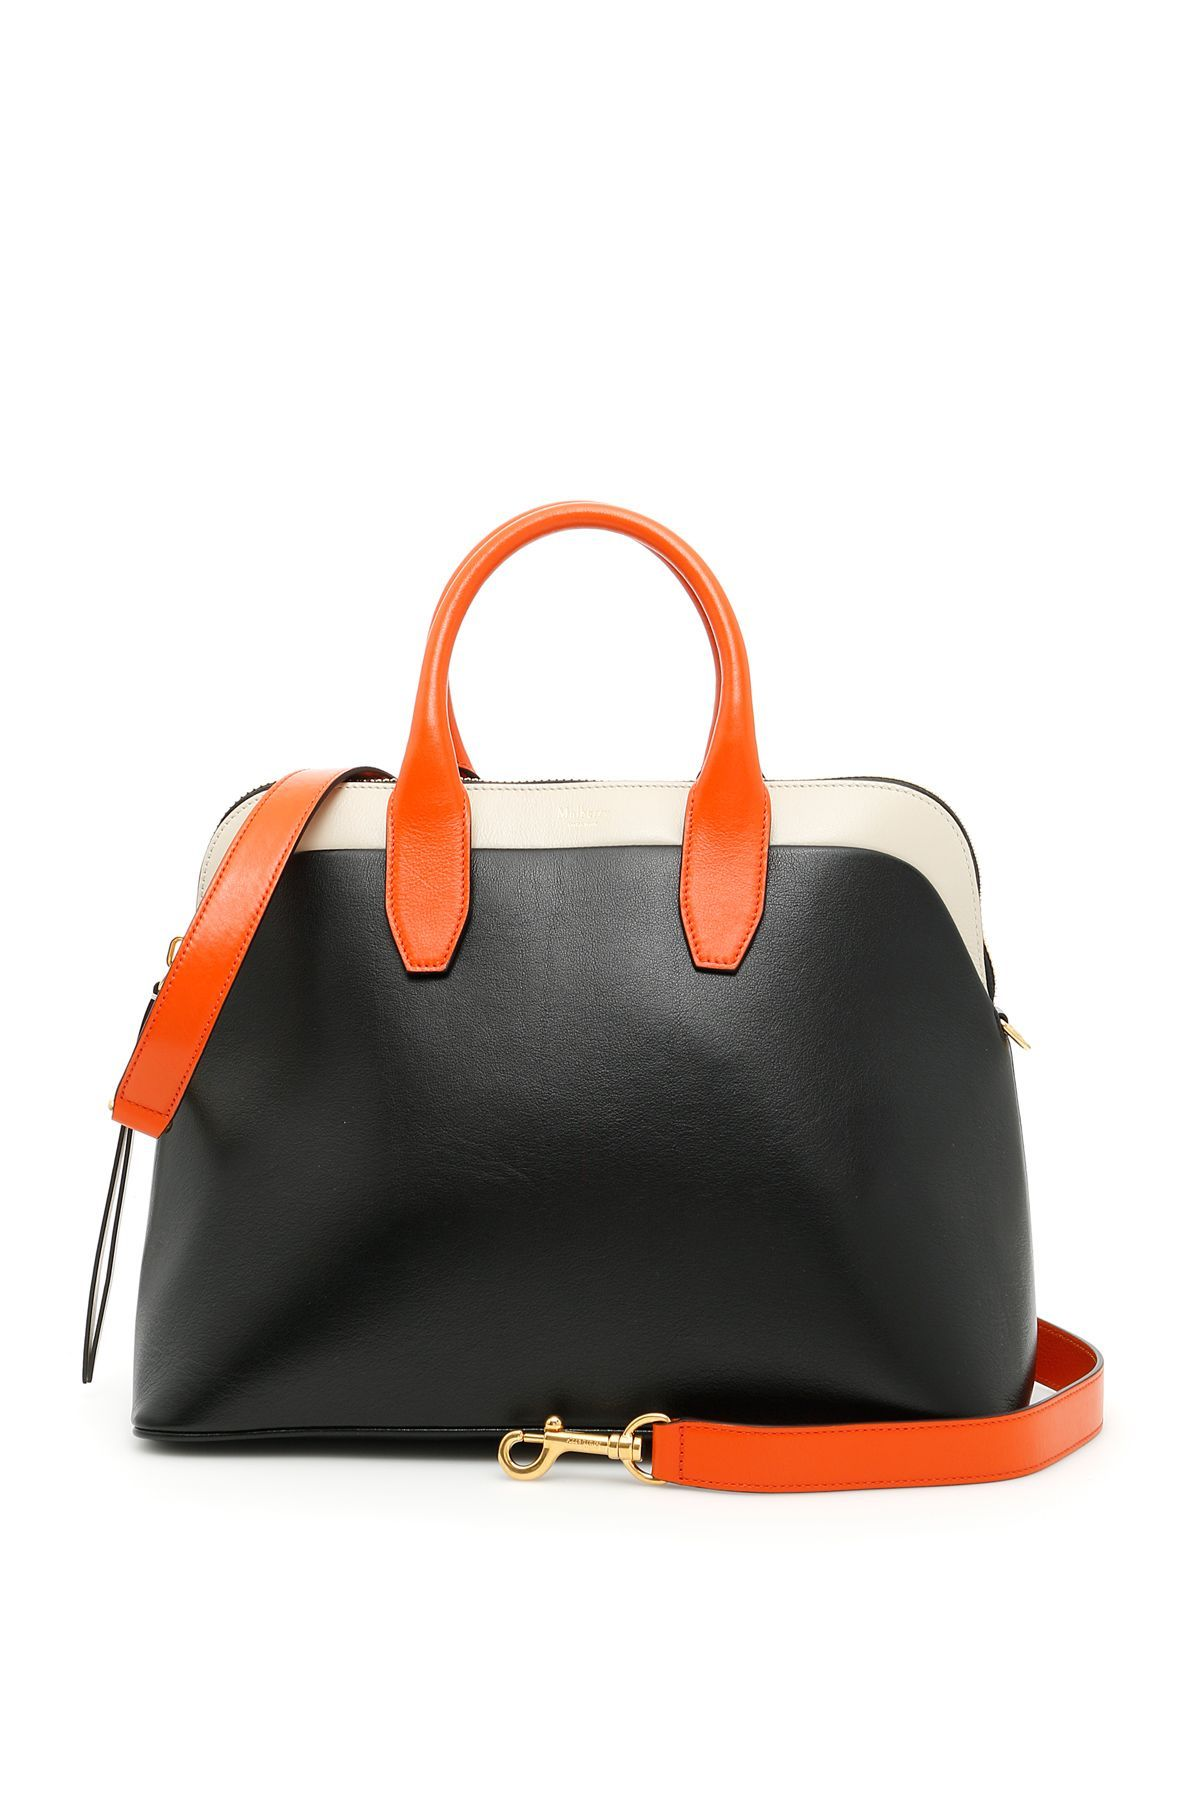 MULBERRY COLVILLE BAG.  mulberry  bags  shoulder bags  leather  lining   42a5da9730